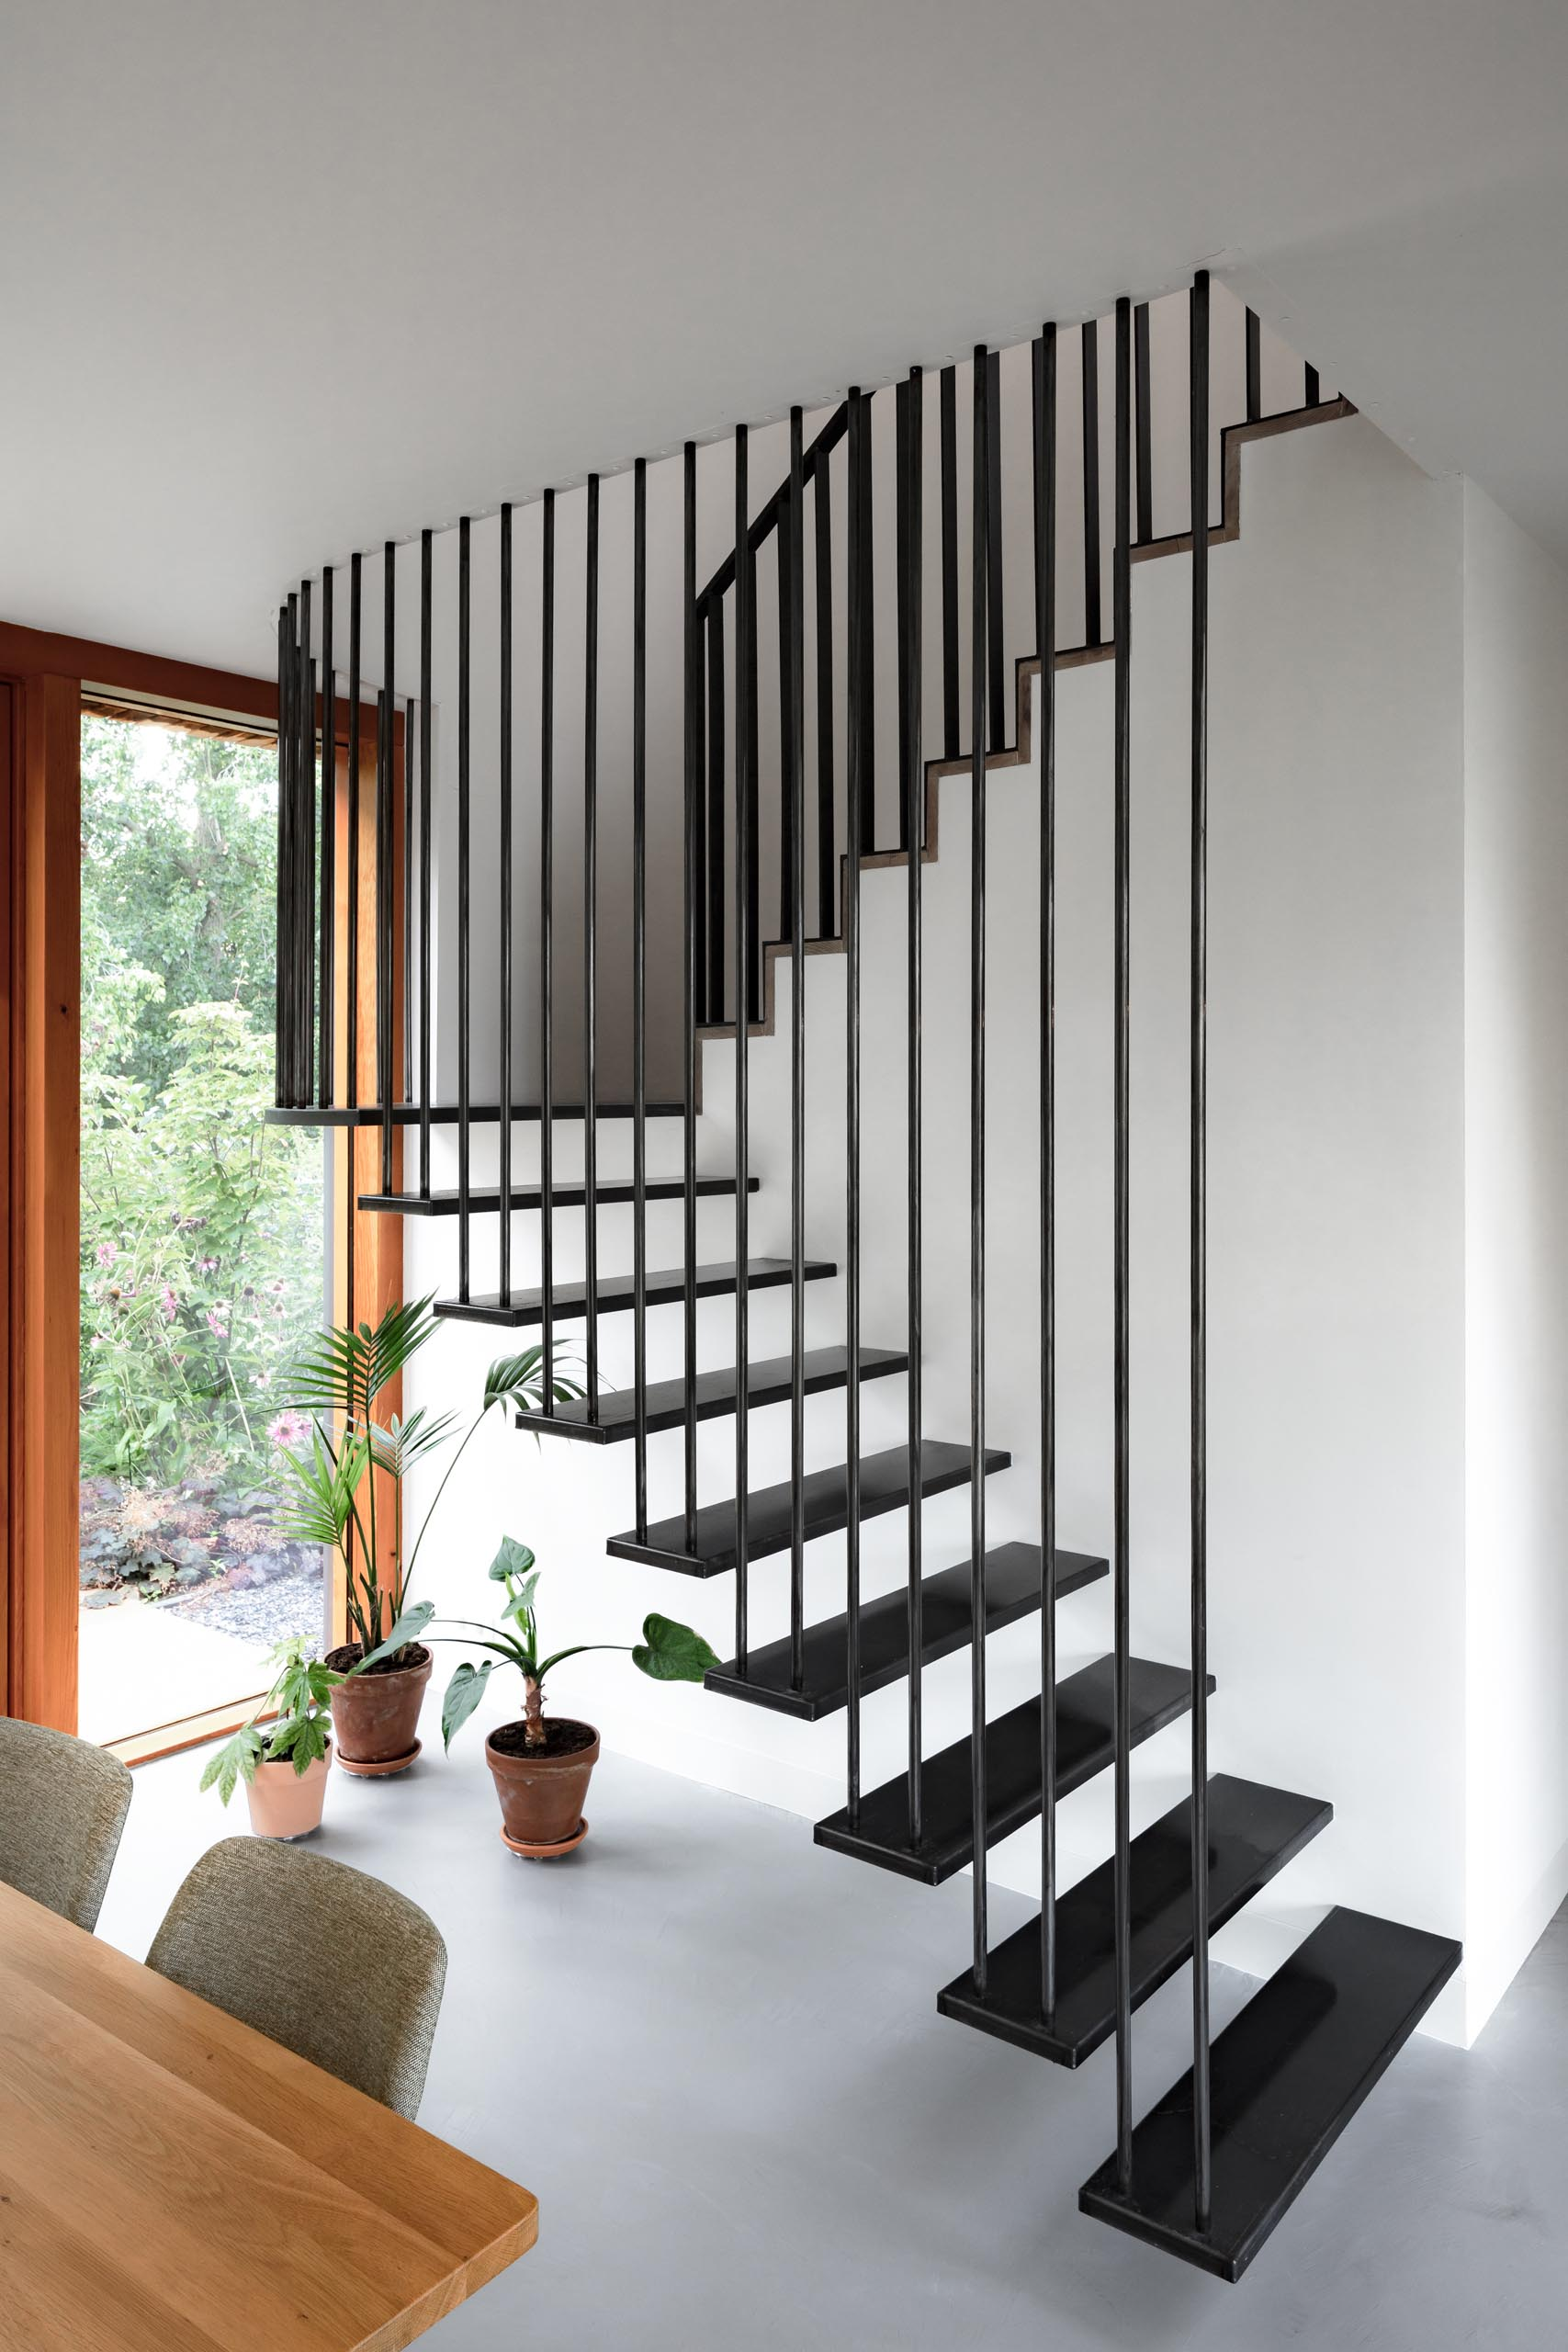 Modern black stairs that contrast the white walls and wood accents.